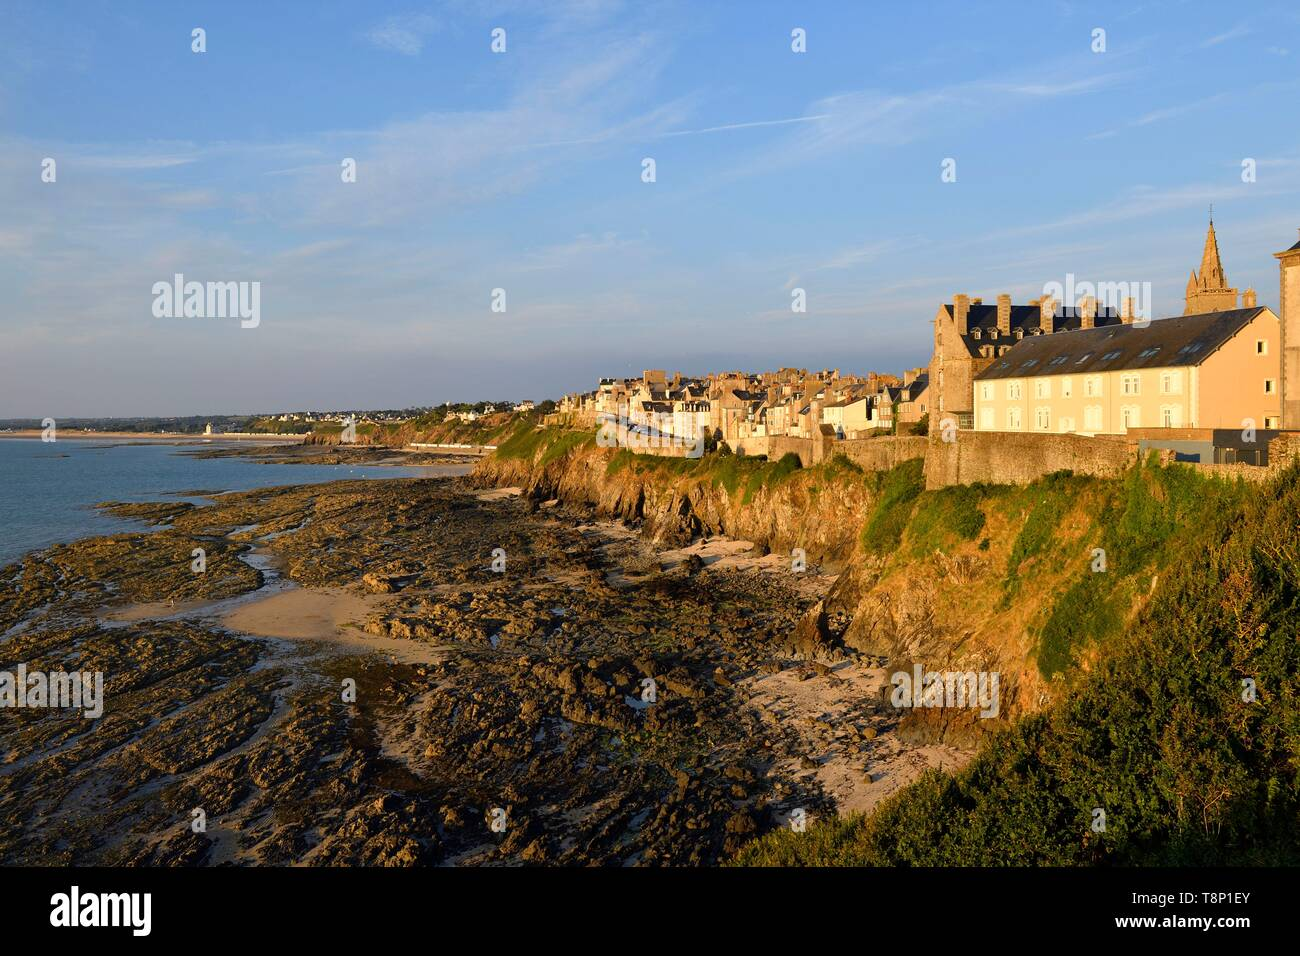 France, Manche, Cotentin, Granville, the Upper Town built on a rocky headland on the far eastern point of the Mont Saint Michel Bay - Stock Image